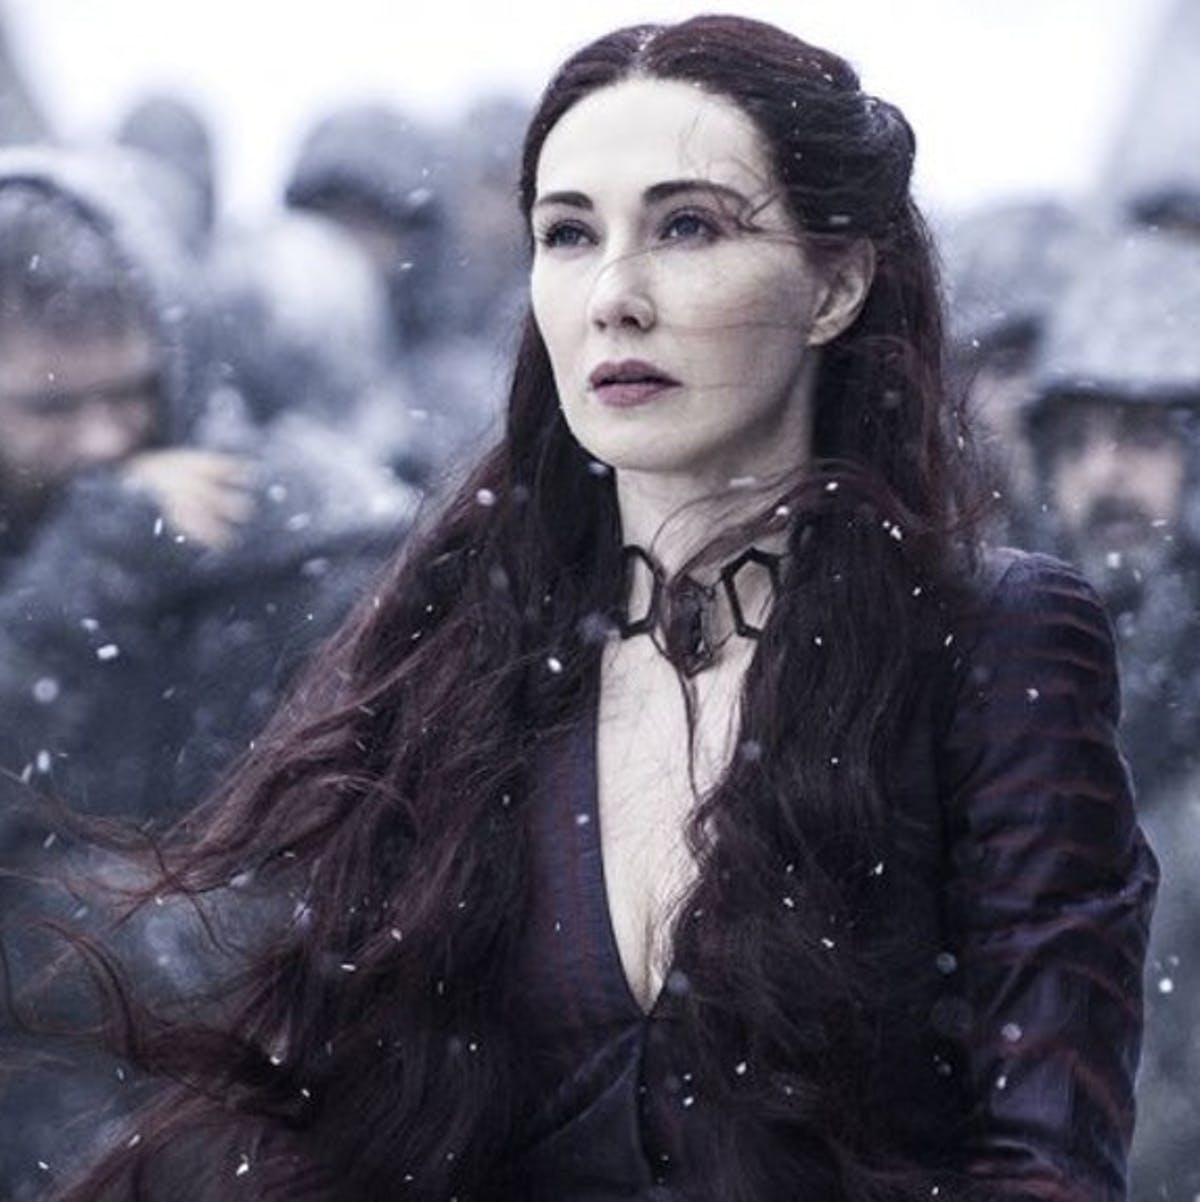 'Game of Thrones' Melisandre Season 8: She May Already Be Back in Disguise